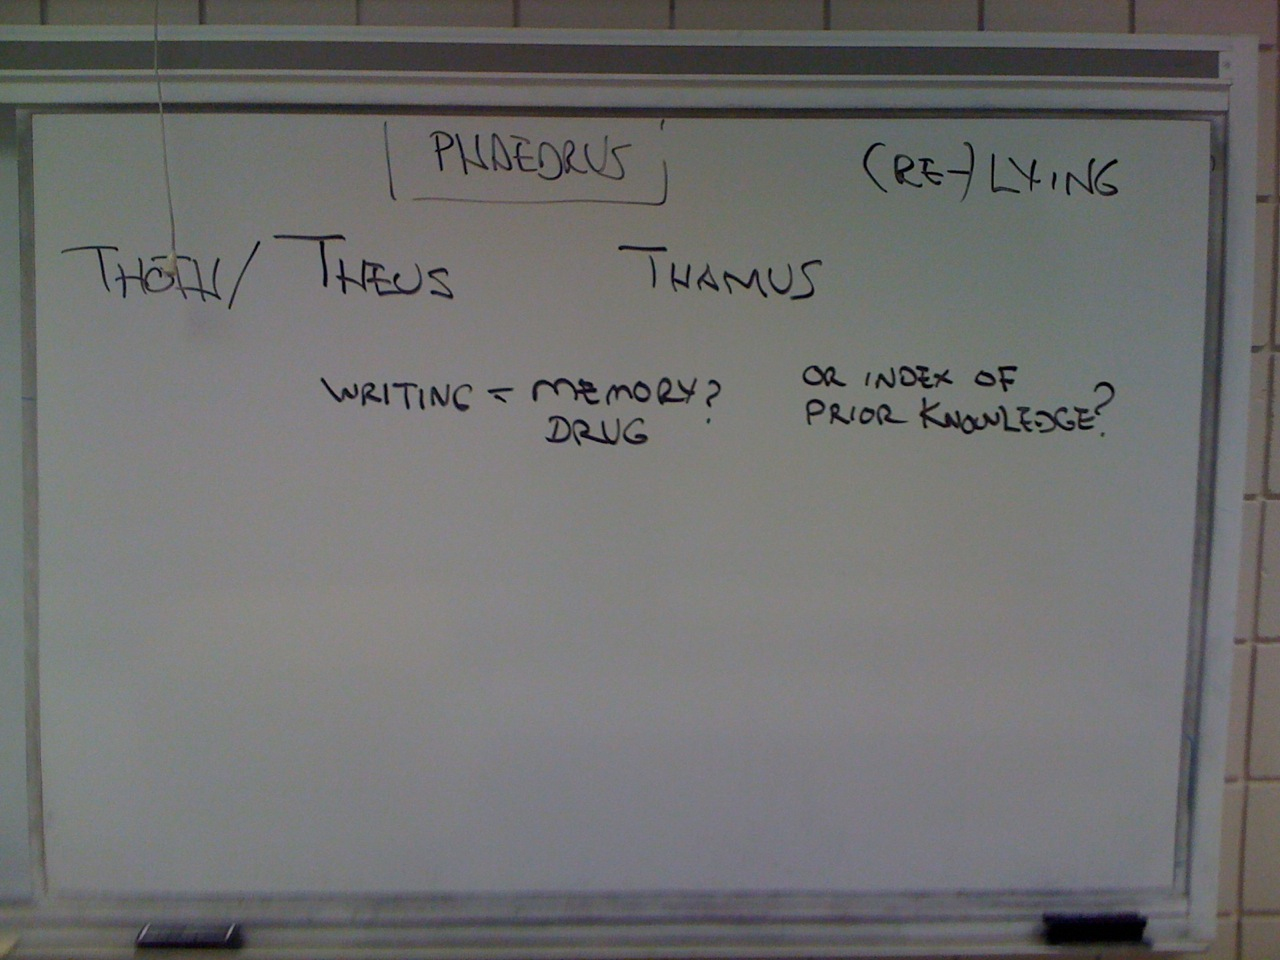 phaedrus and rhetoric With a masterful sense of the place of rhetoric in both thought and practice and an ear attuned to the clarity, natural simplicity, and charm of plato's gre.